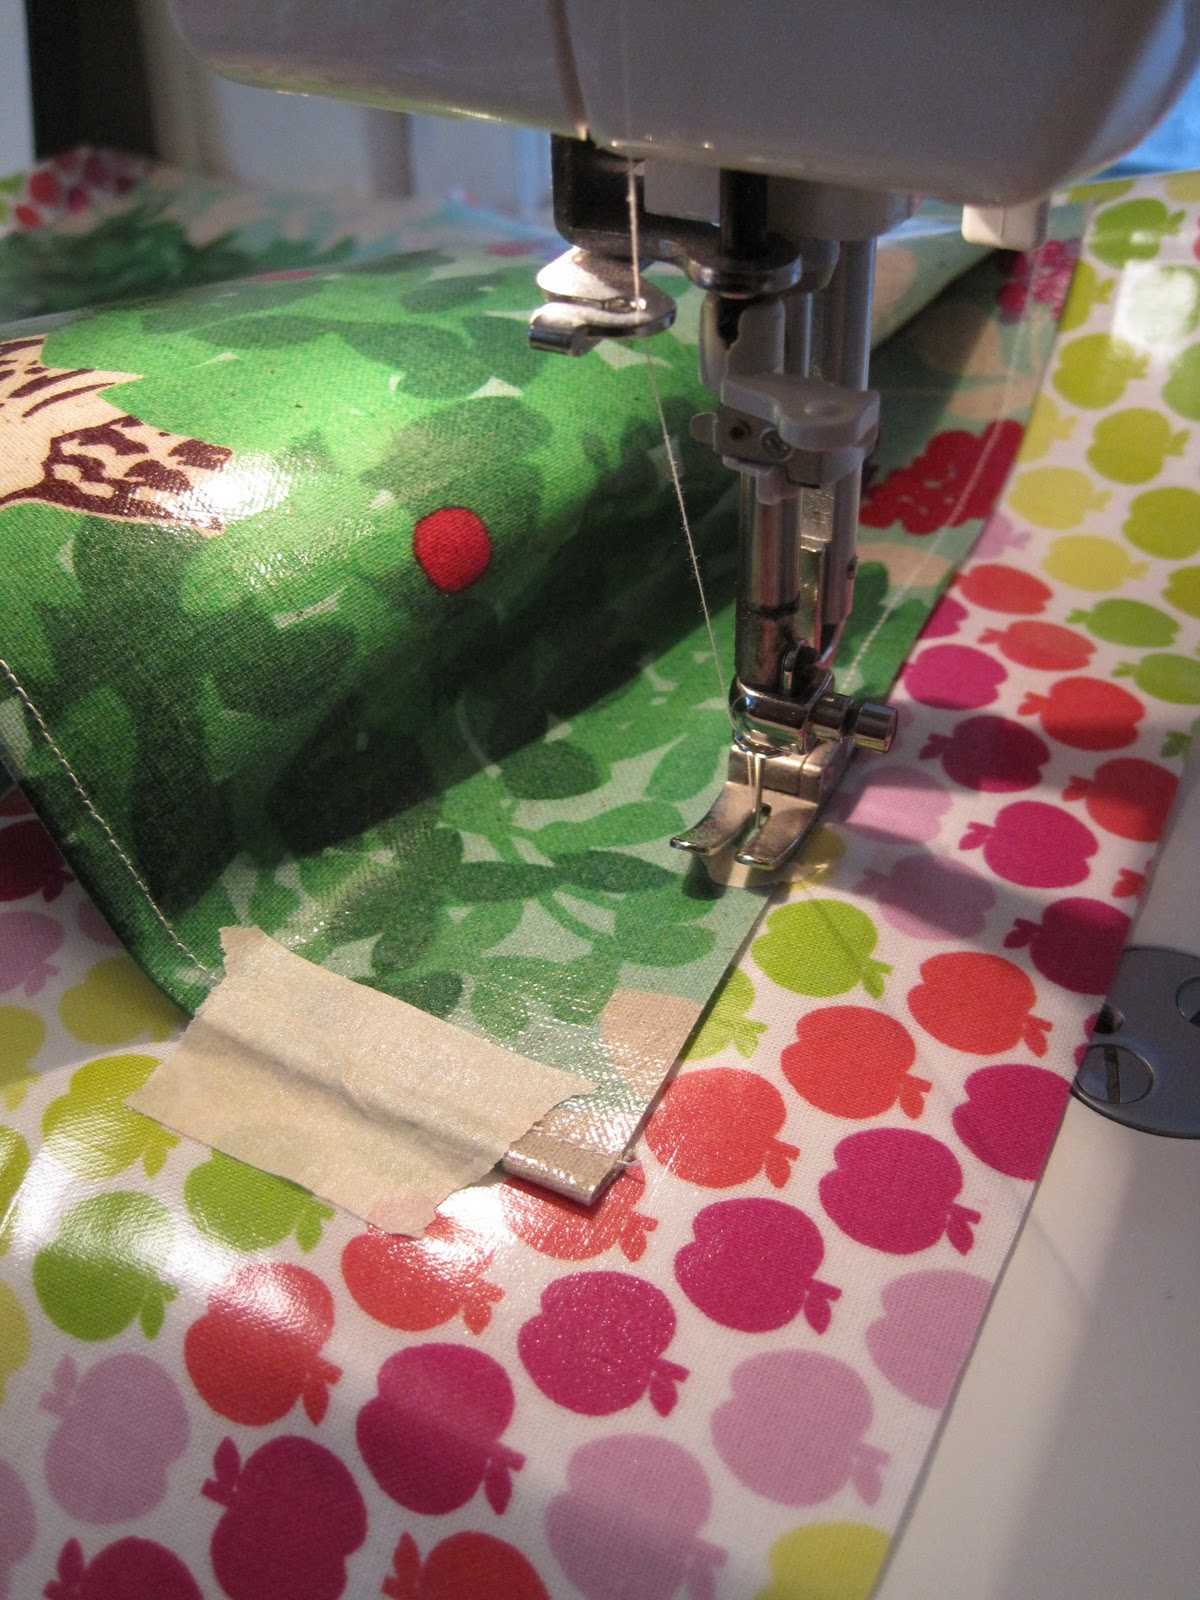 Creative Officewear Made Totally By Office Supply: Sew Lux Fabric : Blog: Get Organized: Kids Arts & Crafts